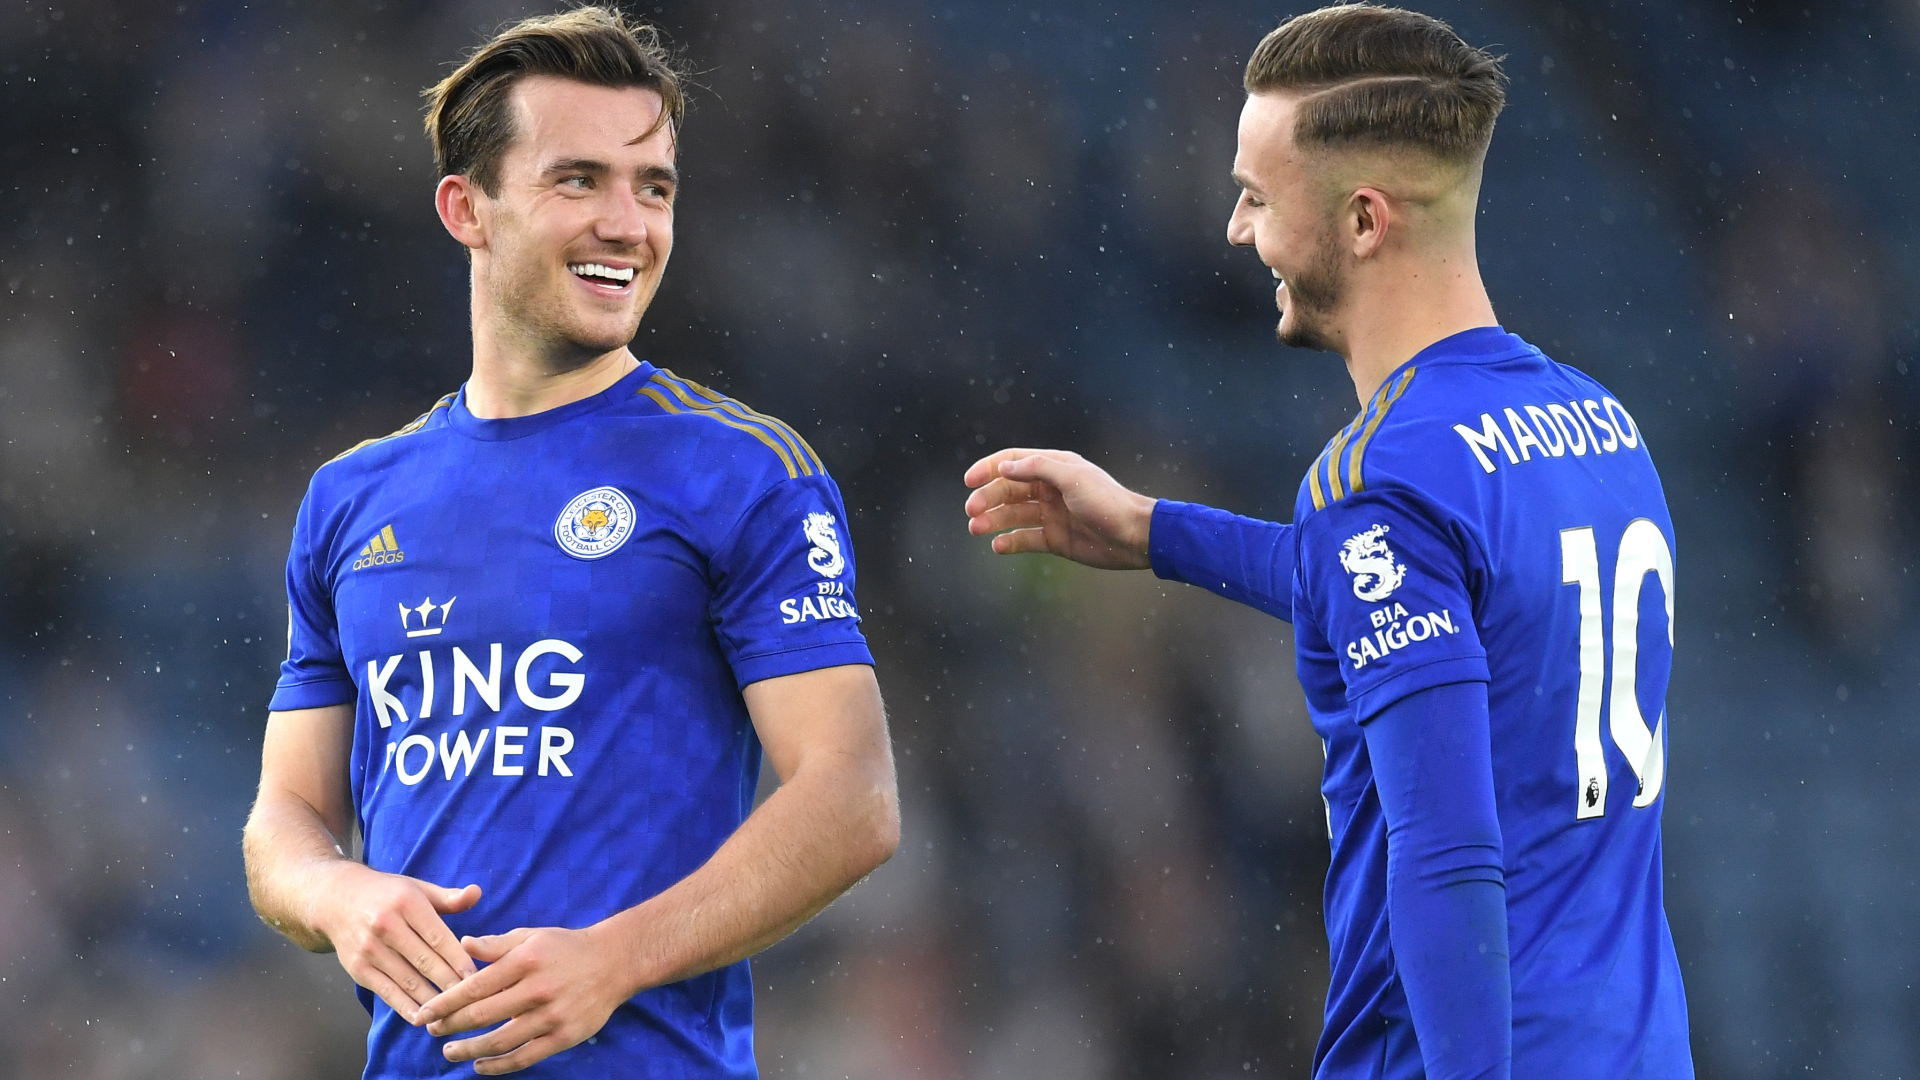 James Maddison S Historical Like On Instagram Adds Fuel To Chilwell To Chelsea Rumours Chelsea News